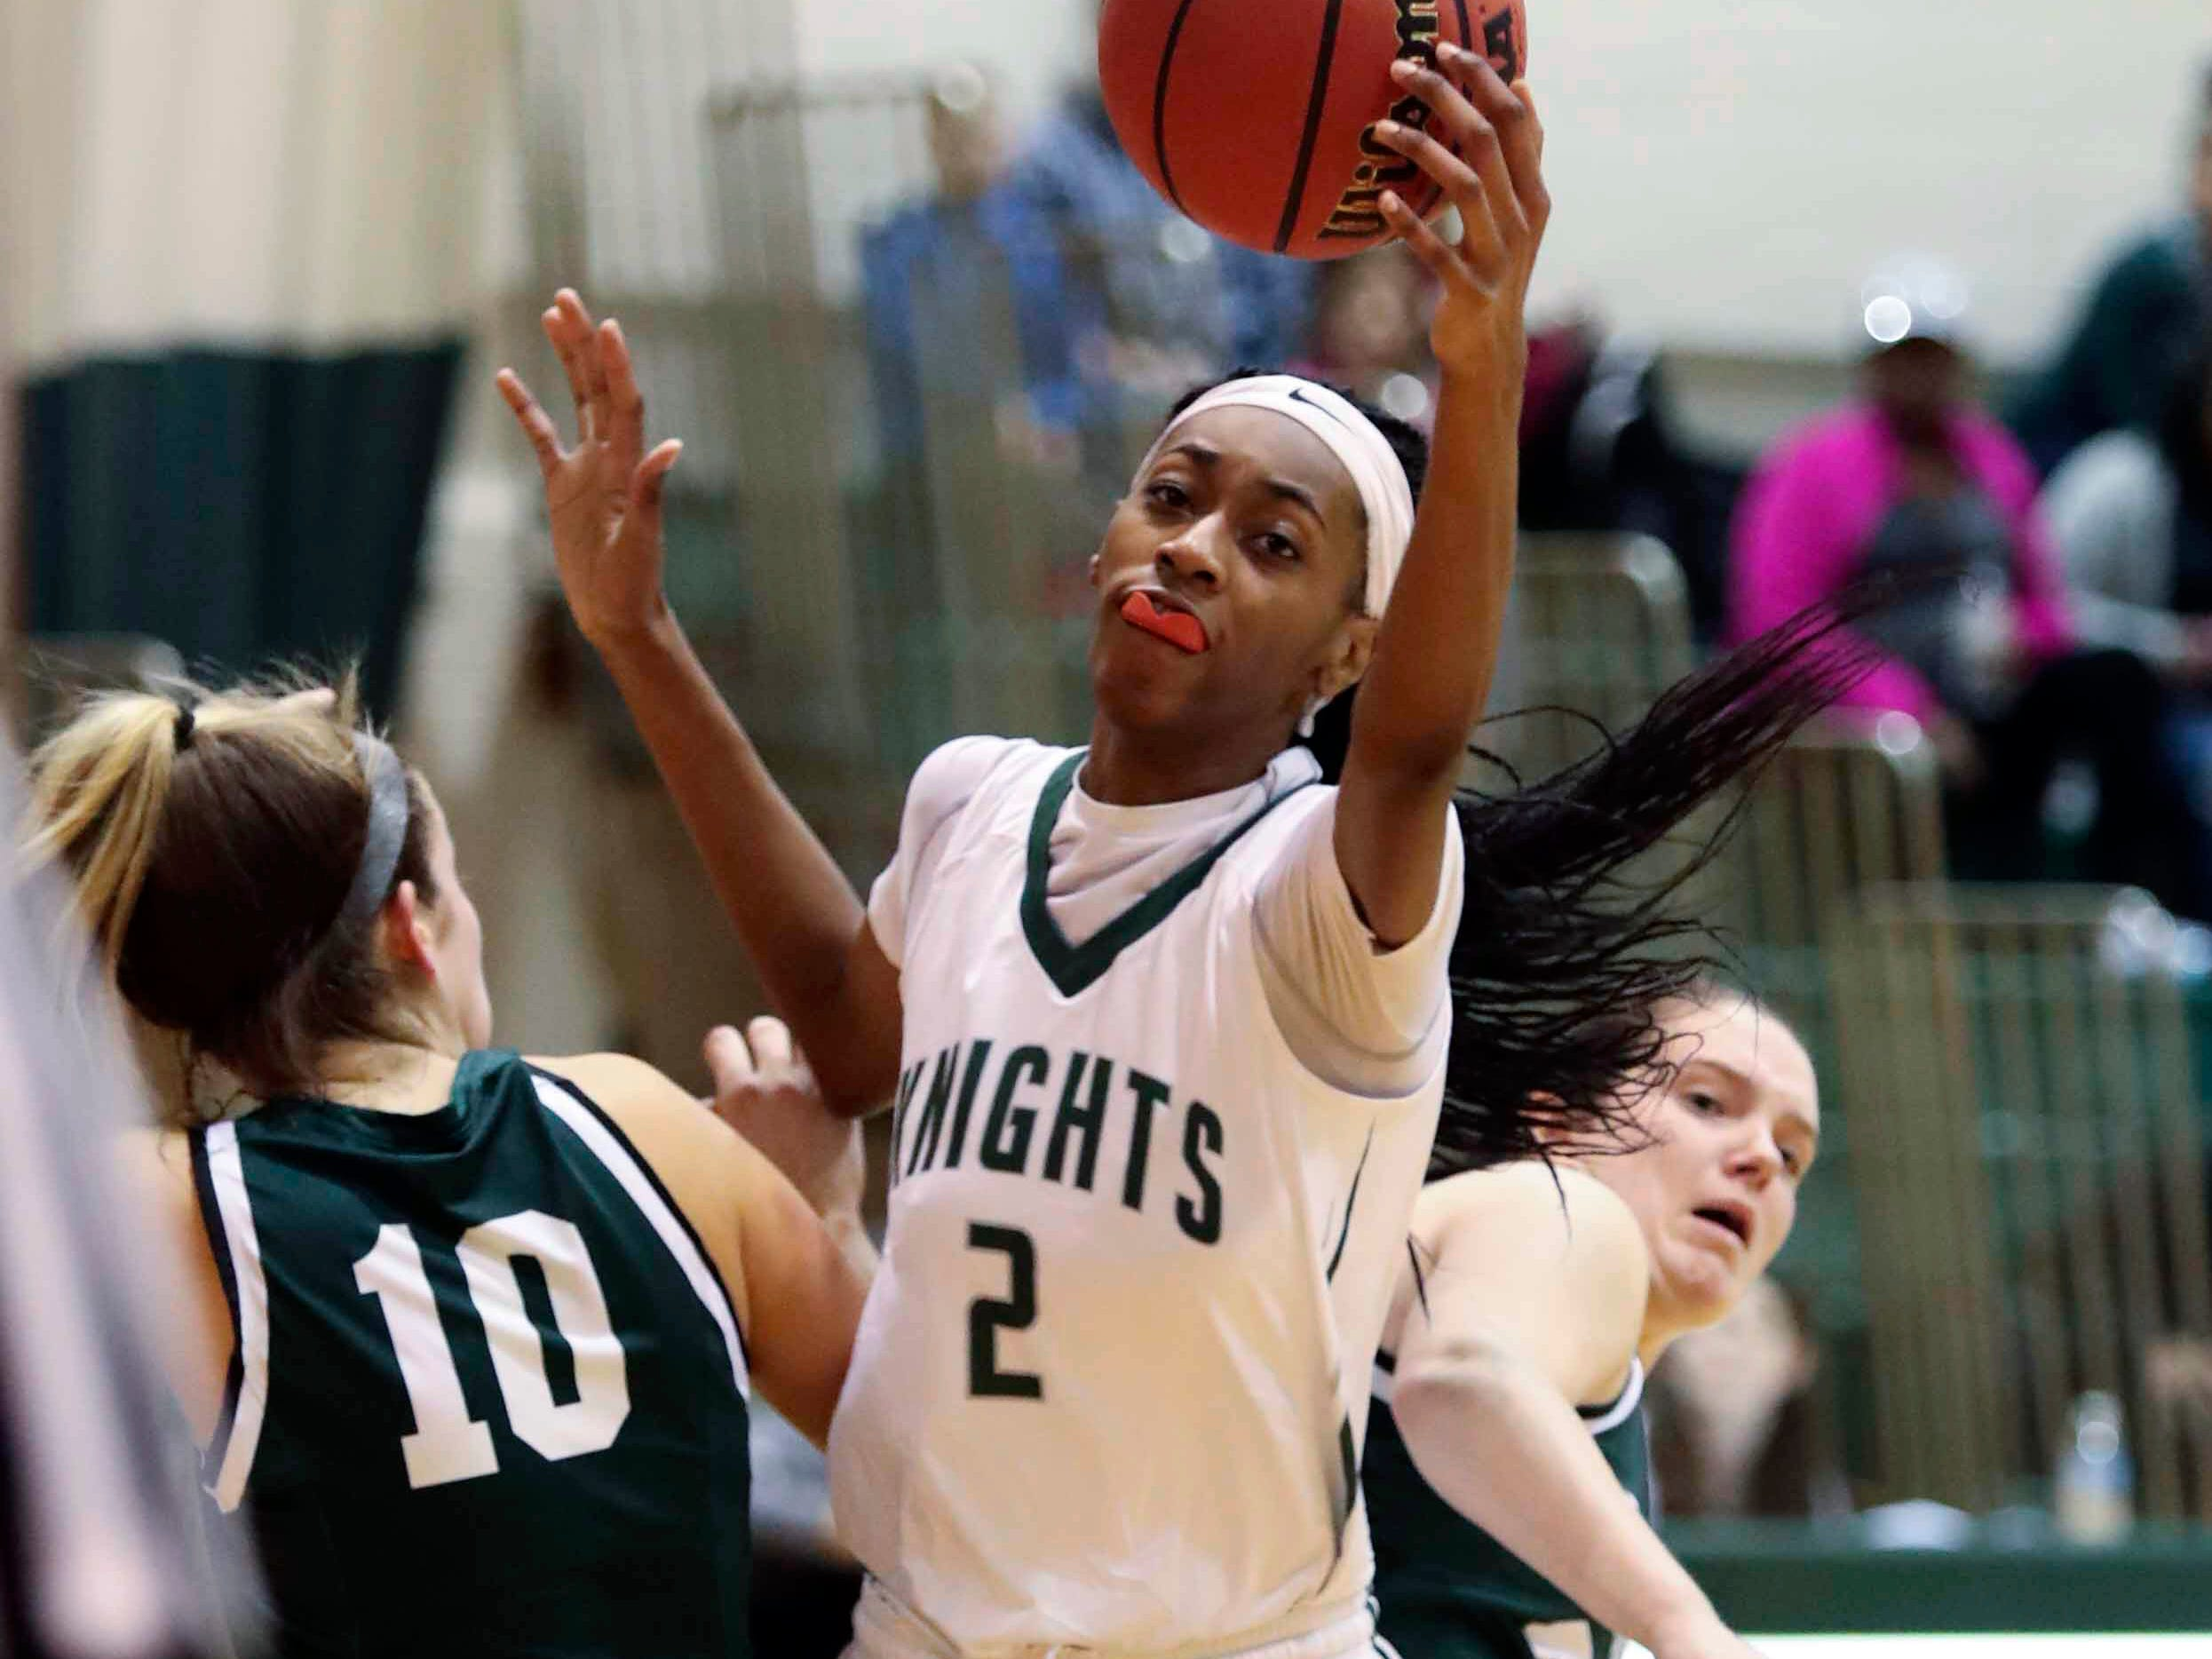 Mount Pleasant's Zaria Newson grabs the ball between Archmere's Isabella Gioffre (left) and Catherine McGonigle as the Auks advance, 35-27, in the opening round of the DIAA state tournament Wednesday at Mount Pleasant.